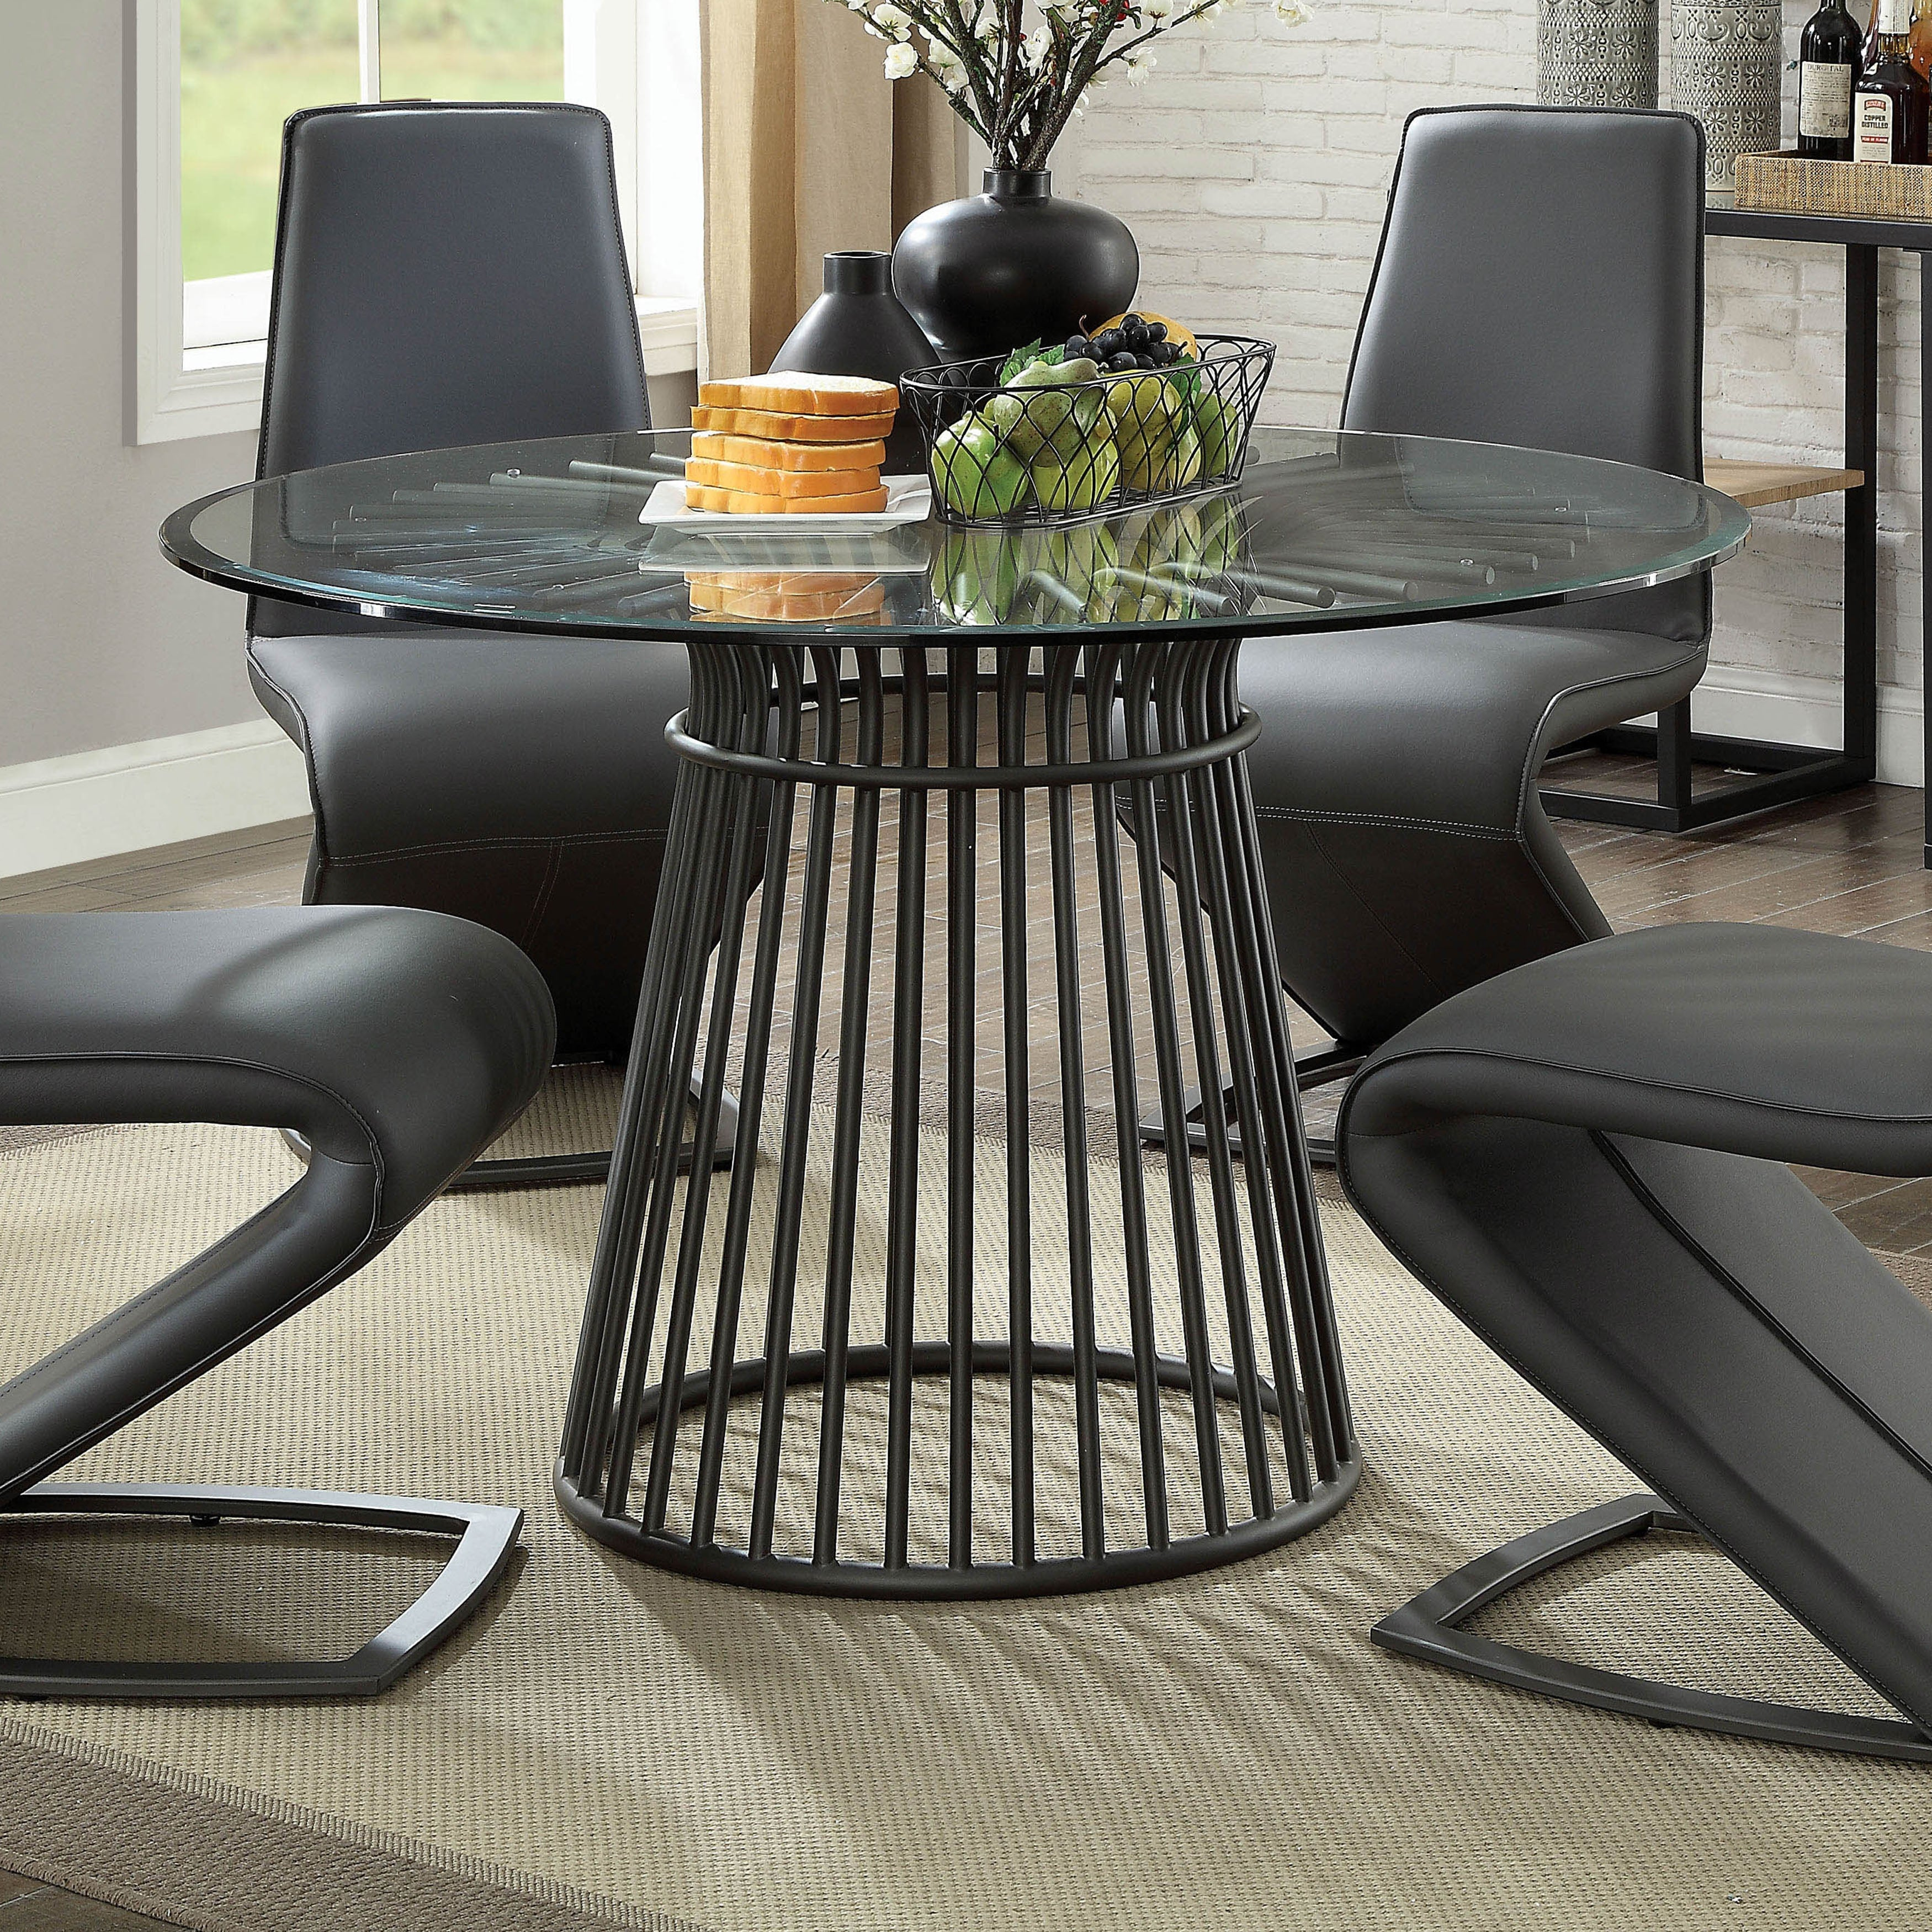 Furniture Of America Gamm Modern Black 48 Inch Round Dining Table Overstock 21177625